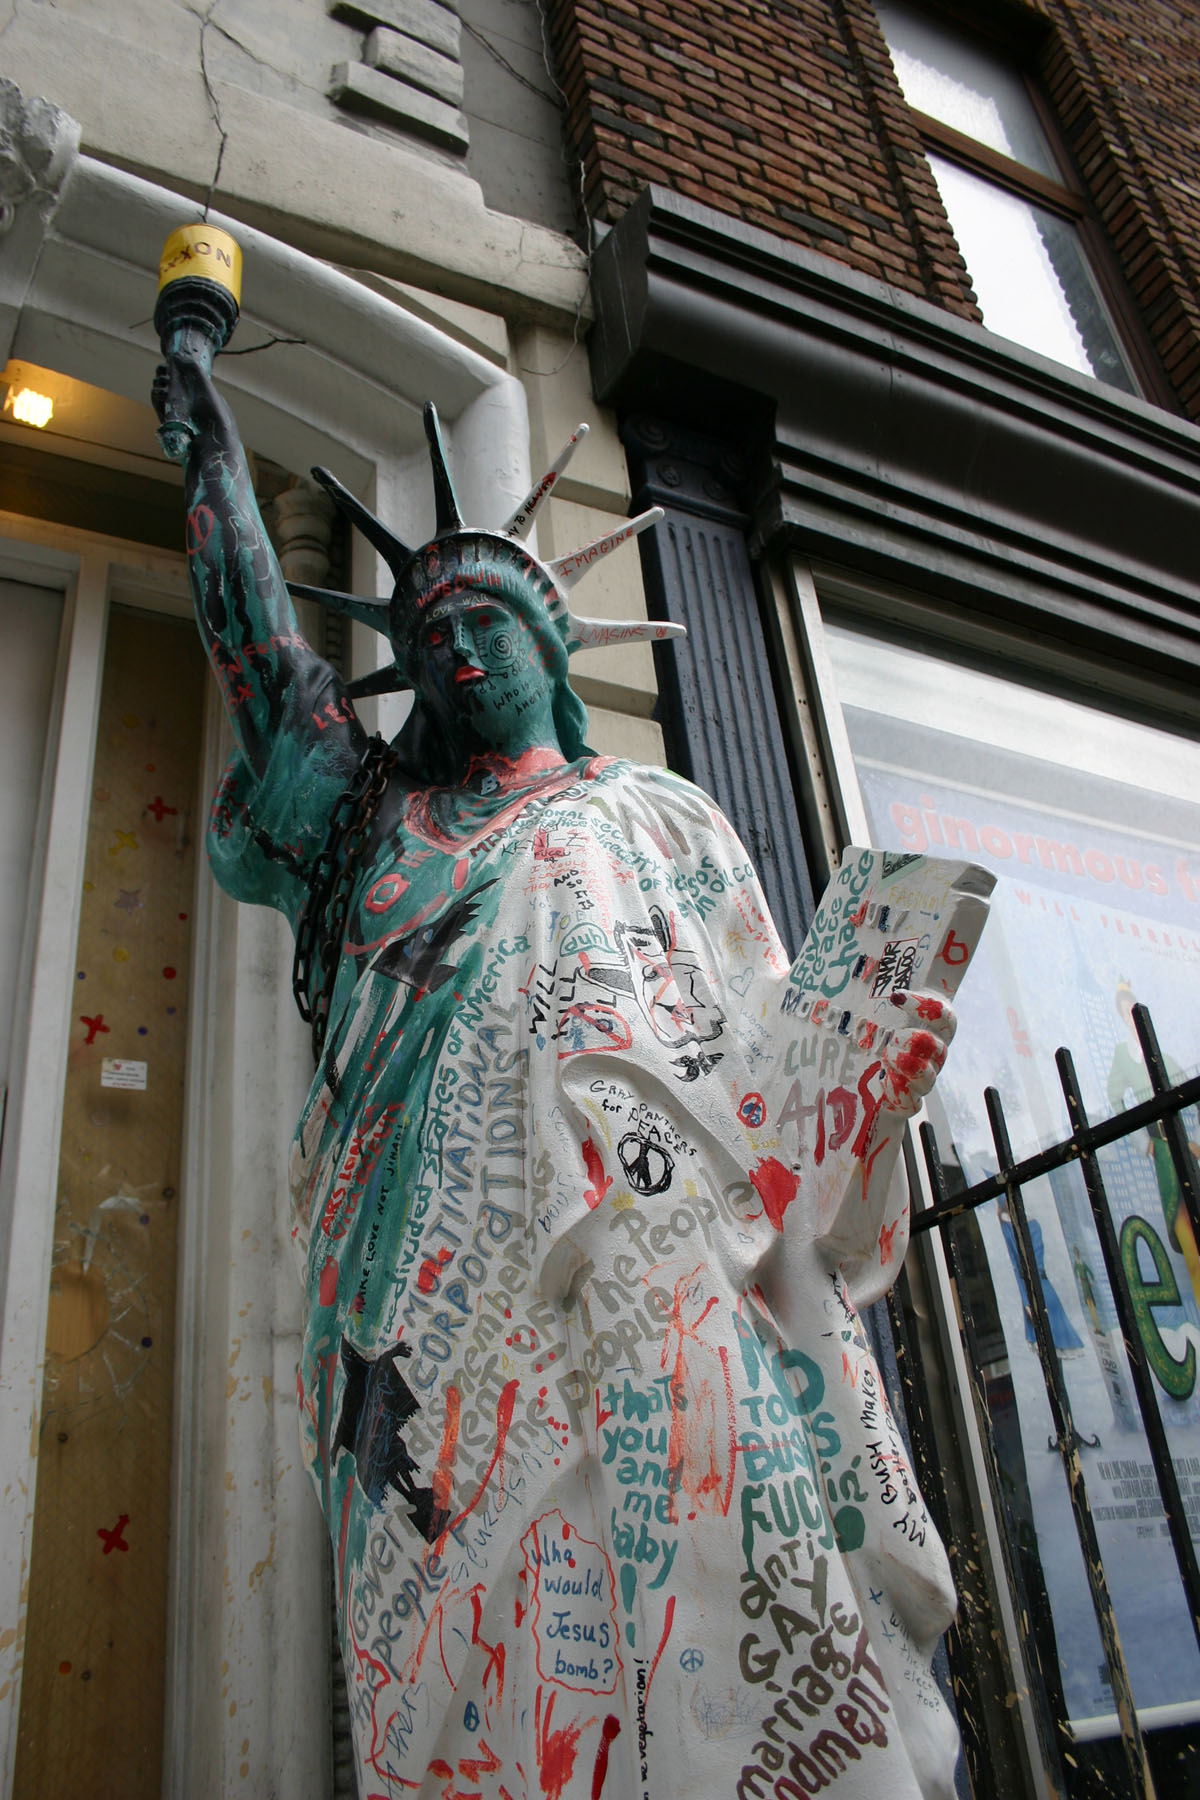 Stature of liberty, Graffiti, Newyork, Sculpture, Small, HQ Photo